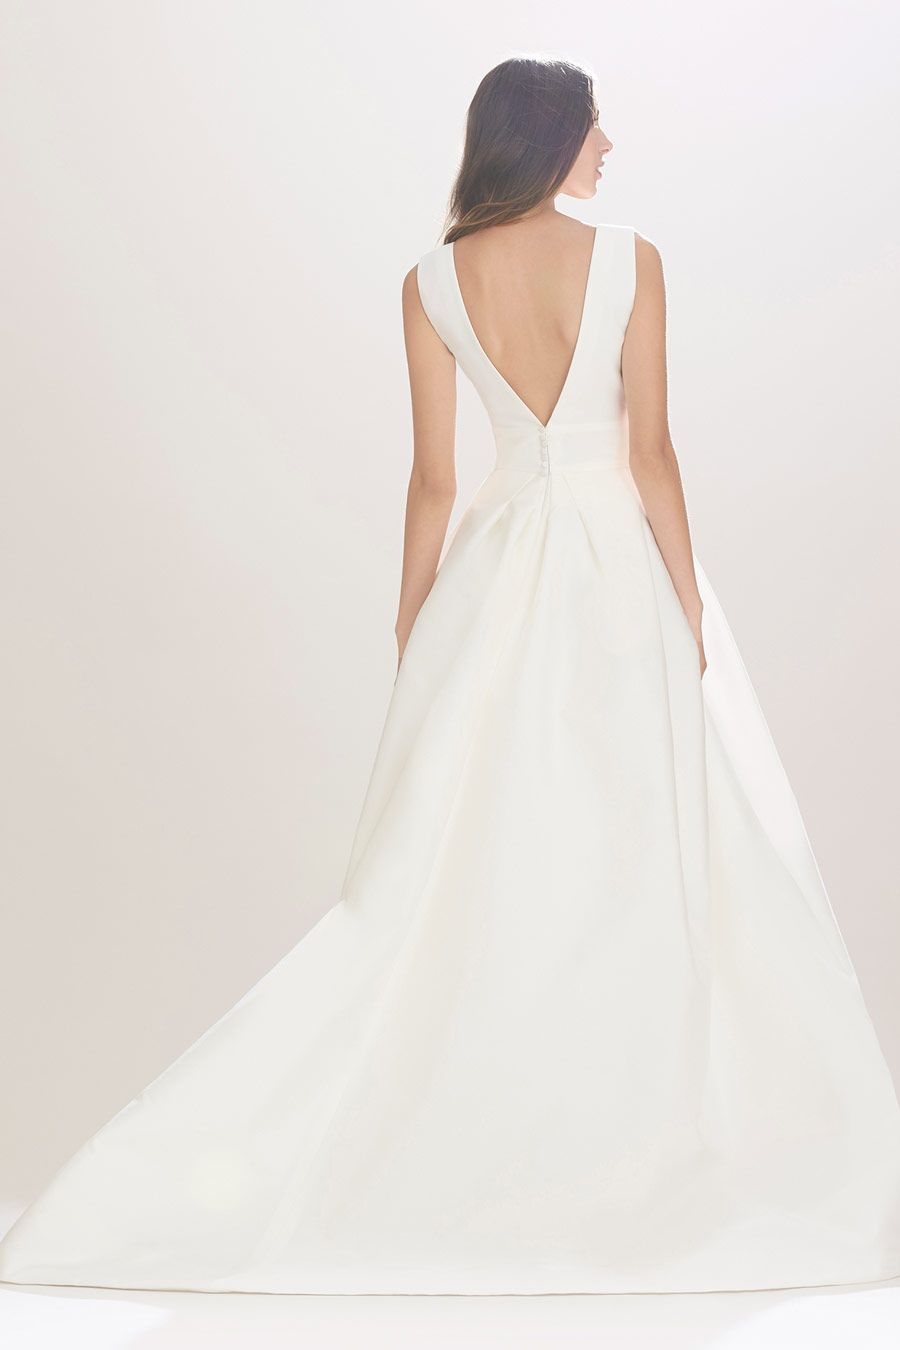 0332578e583 Carolina Herrera Mason at Annika Bridal Boutique